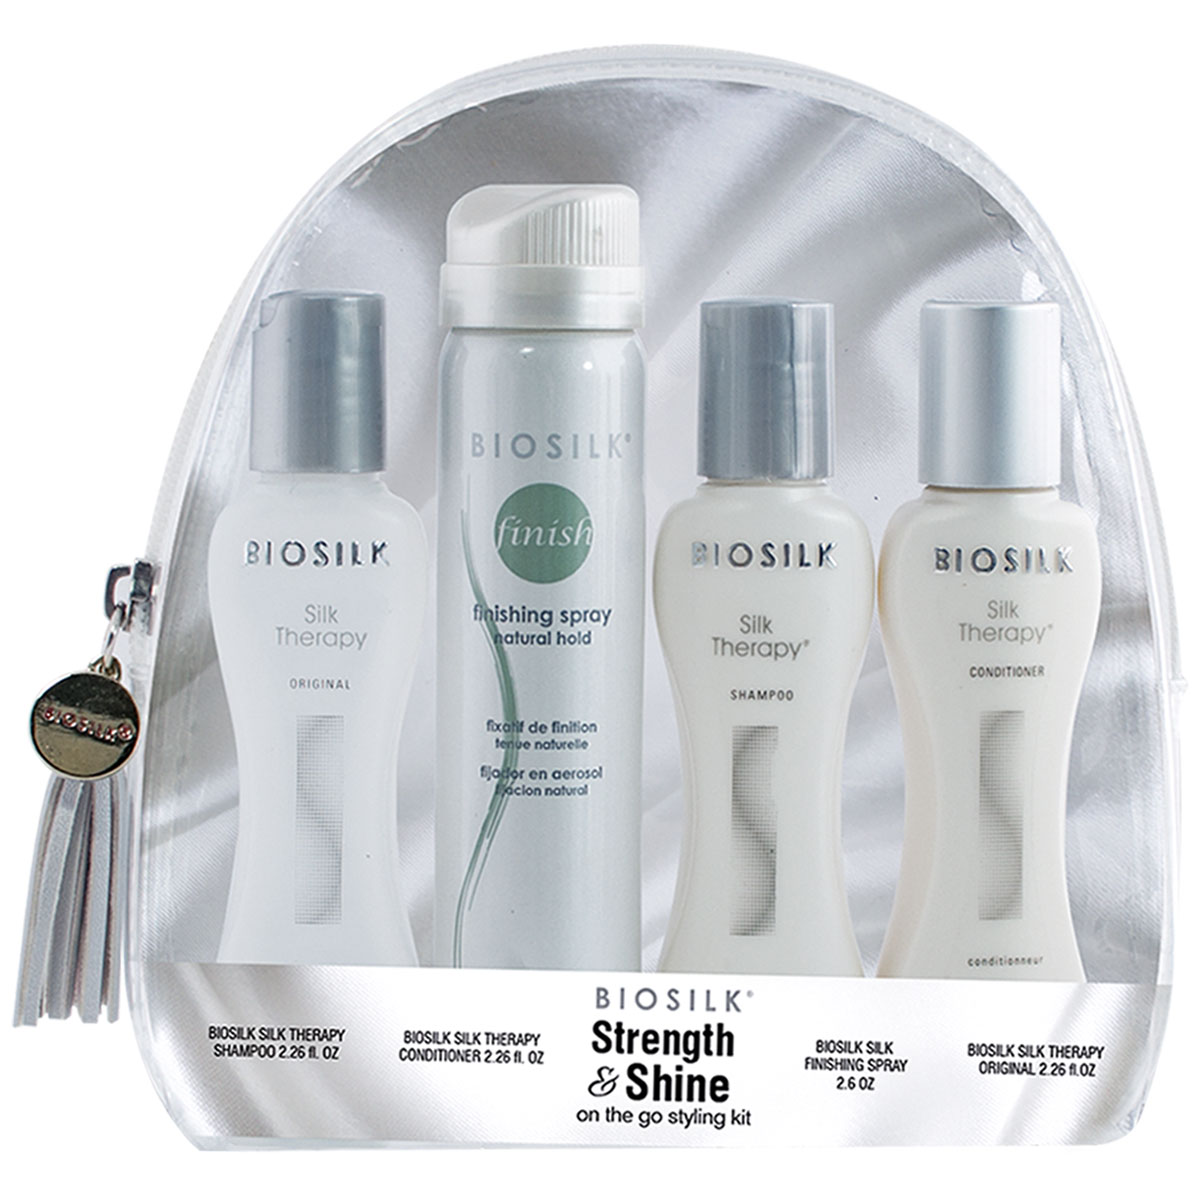 Strength & Shine Kit, Best Anti-Frizz Products to fight Humidity – Features BioSilk Styling Kit